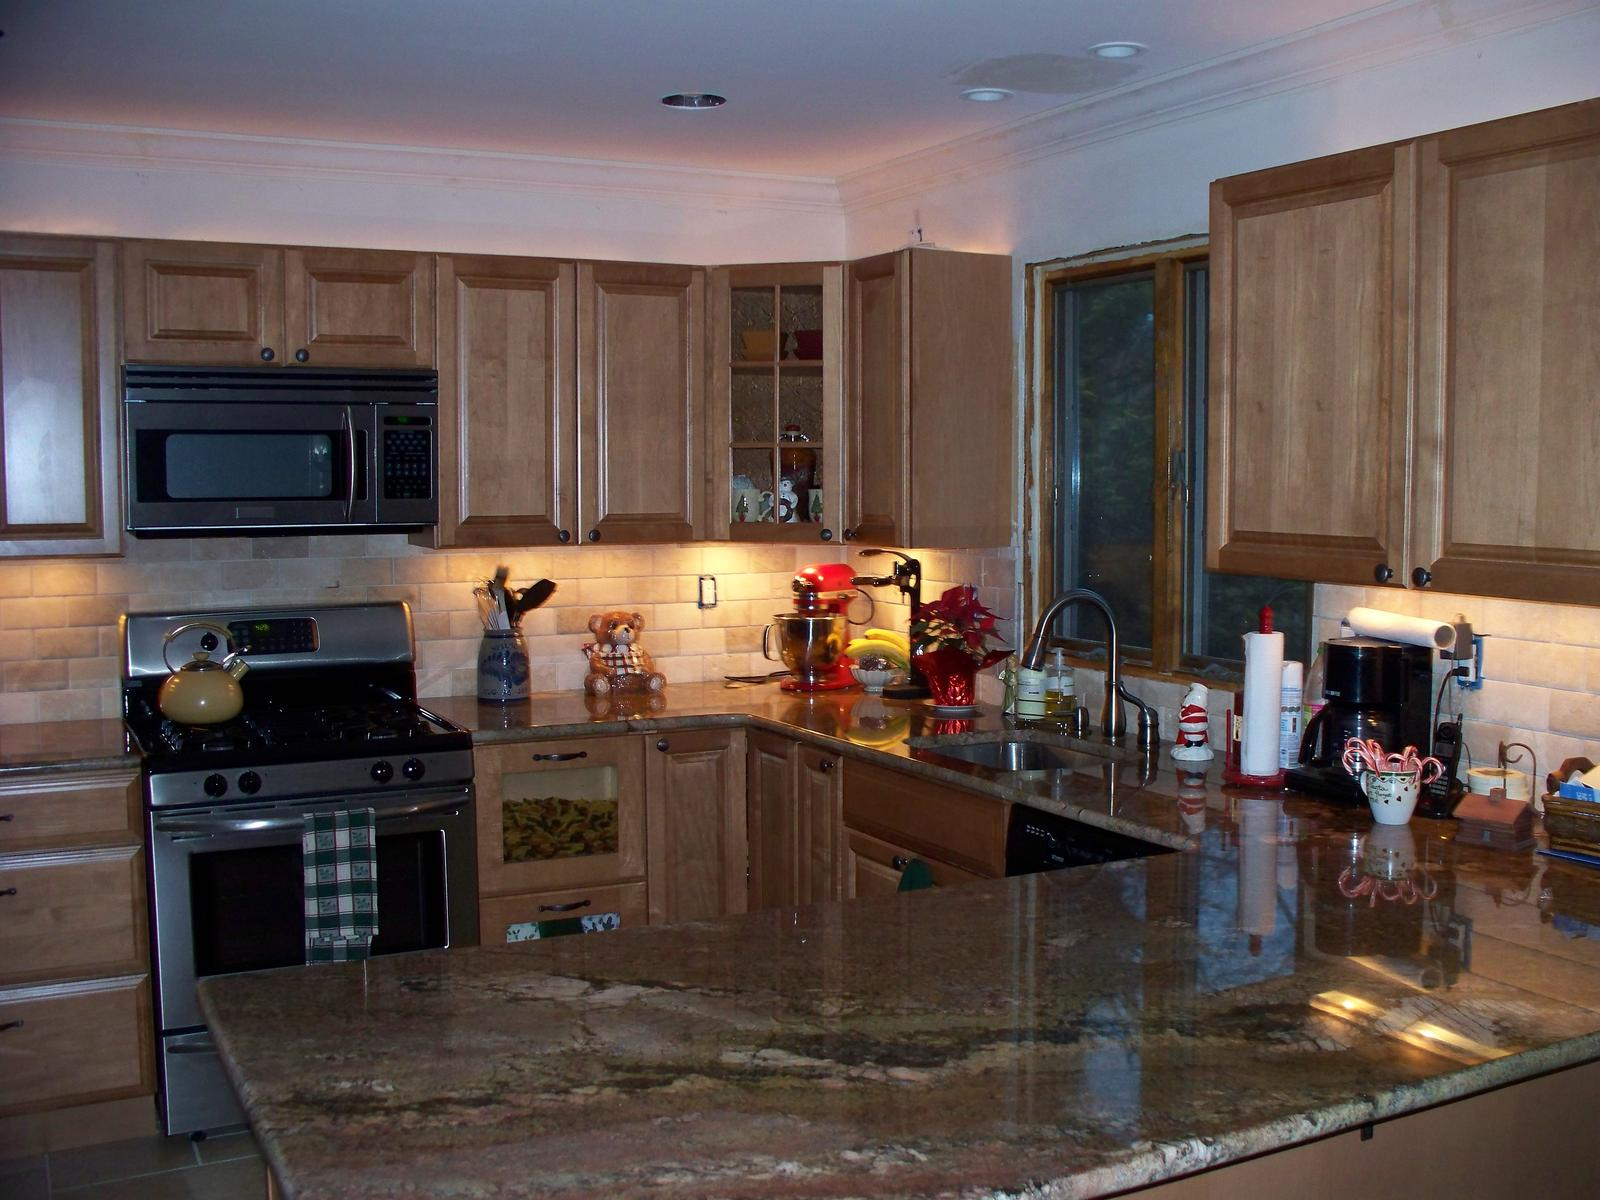 looking for tile backsplash ideas (floors, granite, Home ... on Countertops Backsplash Ideas  id=88543